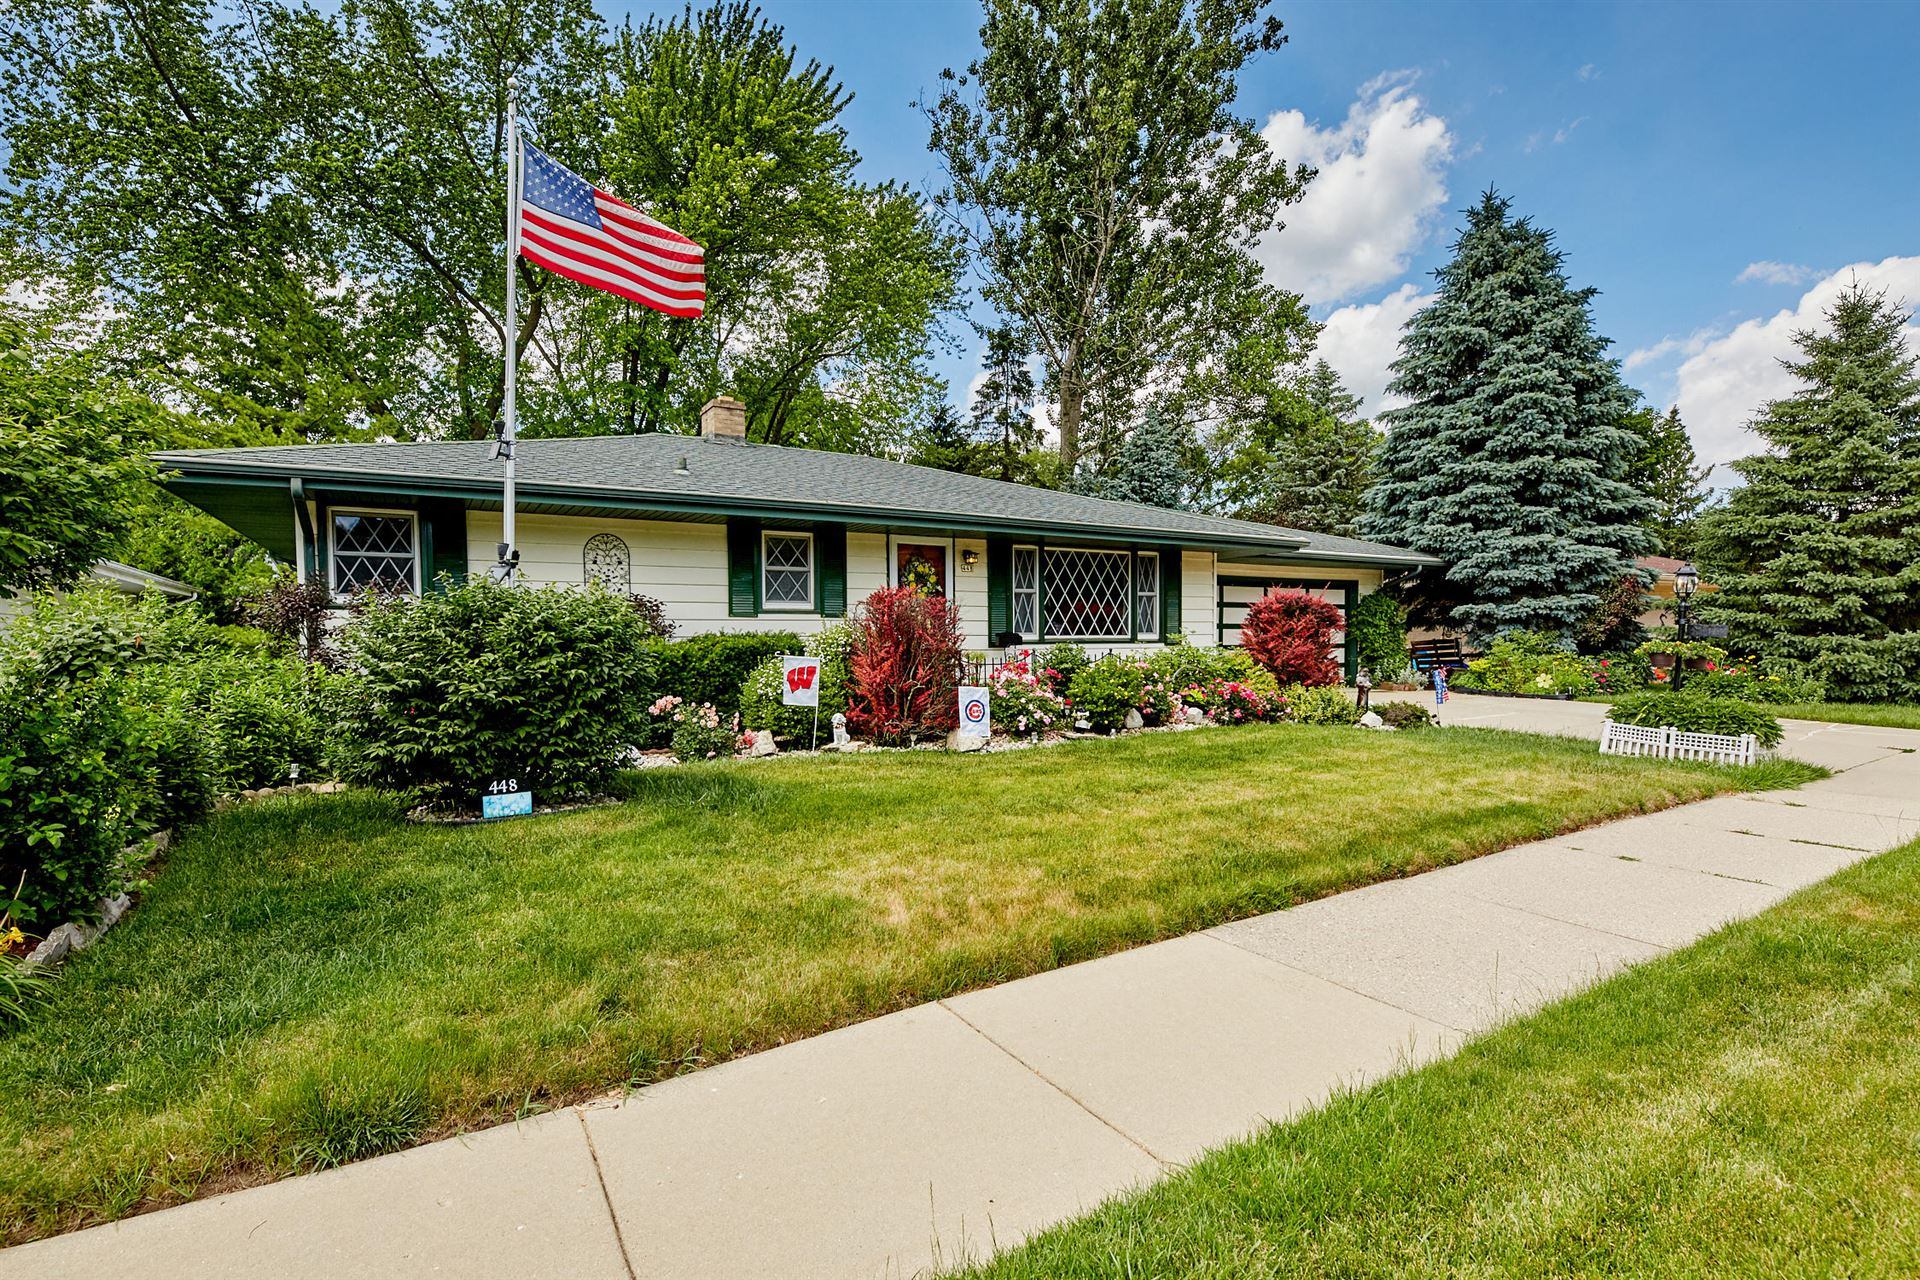 448 Tower Lawn Dr, Burlington, WI 53105 - #: 1696414